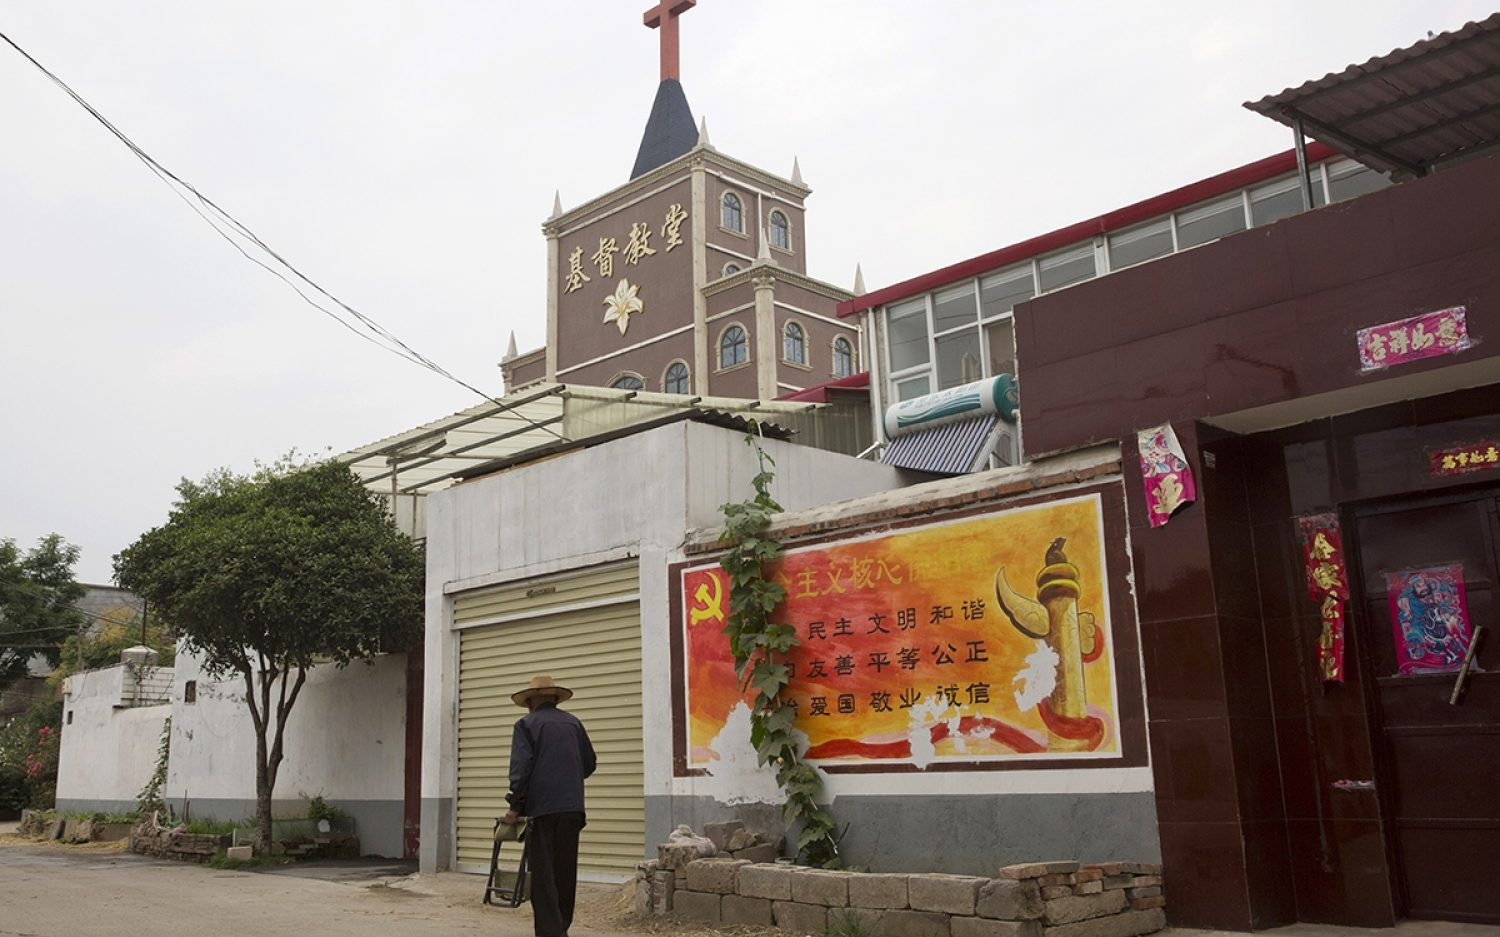 Chinese Christians describe torture at camps